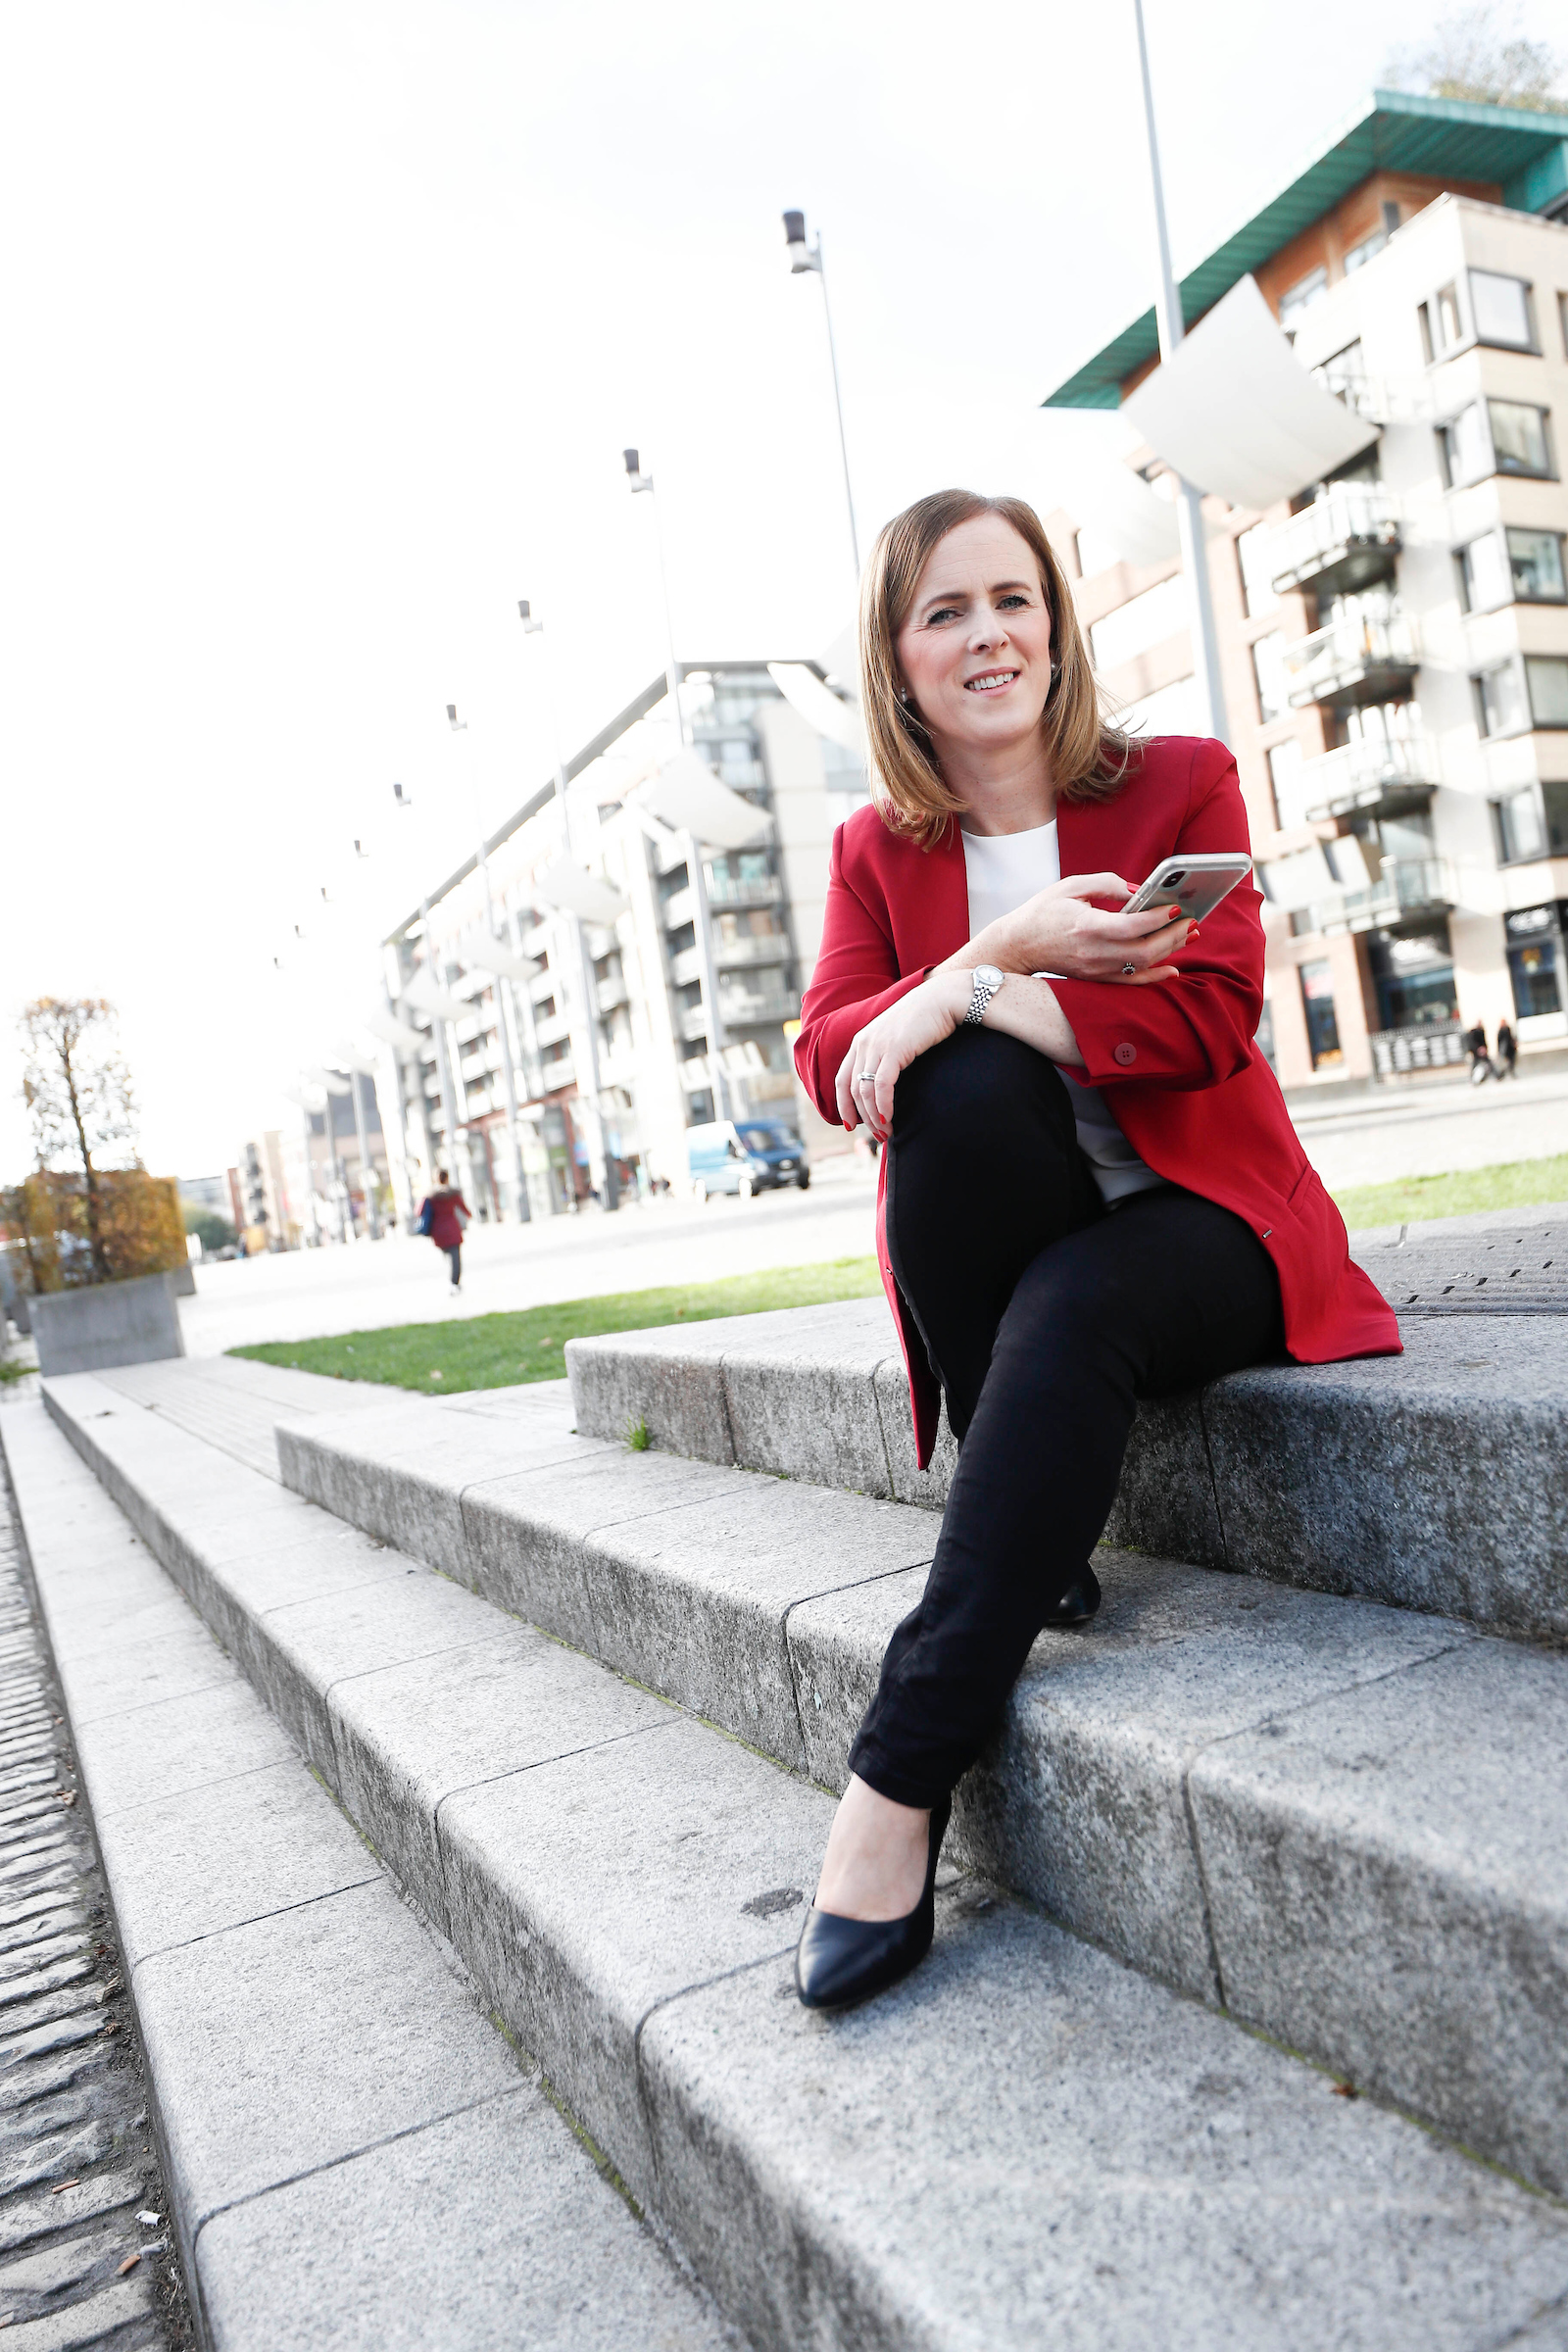 Women Of The Food Industry – Gemma Smyth, Managing Director